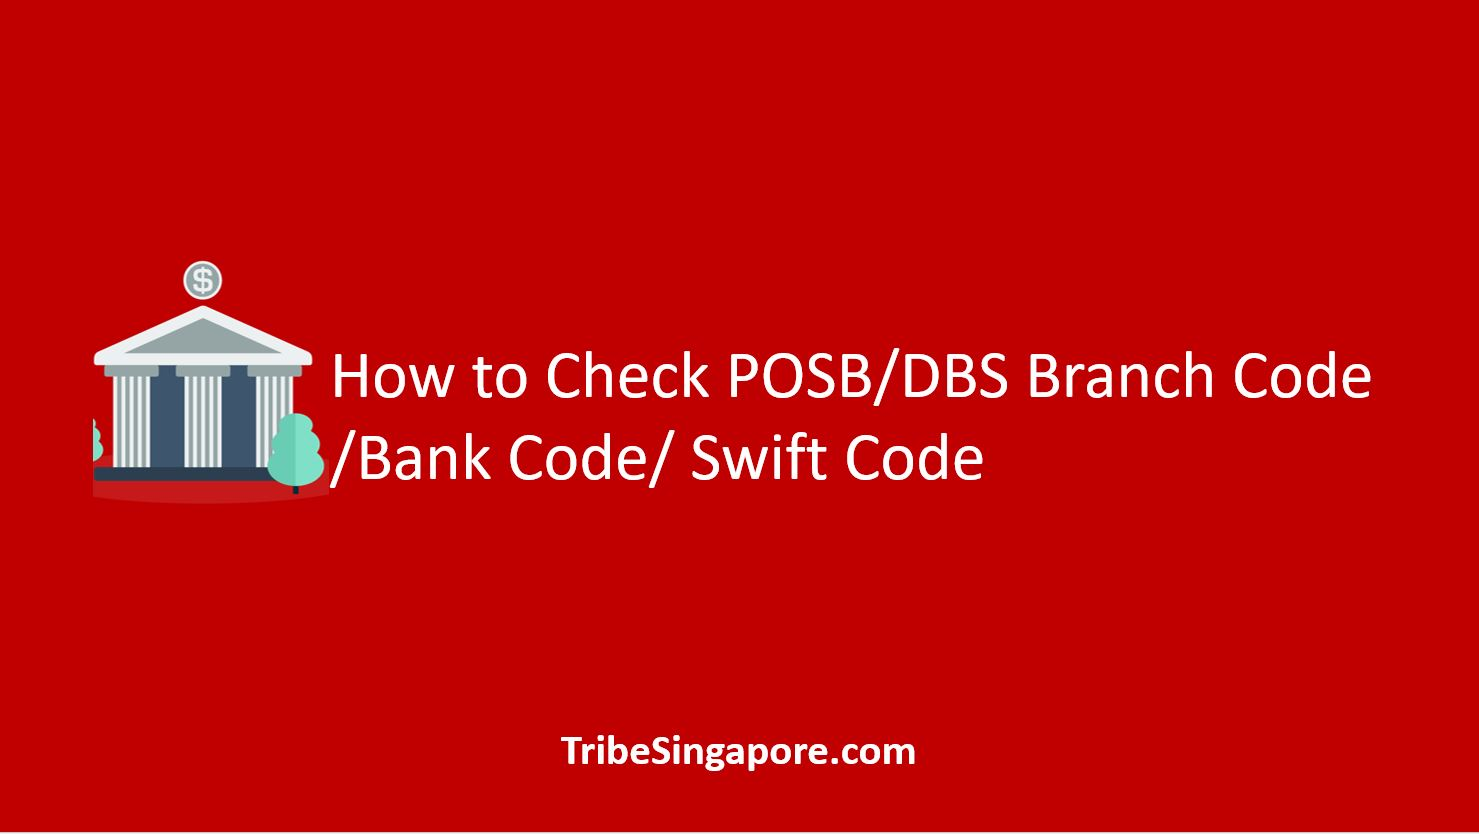 How to Check POSB/DBS Branch Code/Bank Code/ Swift Code